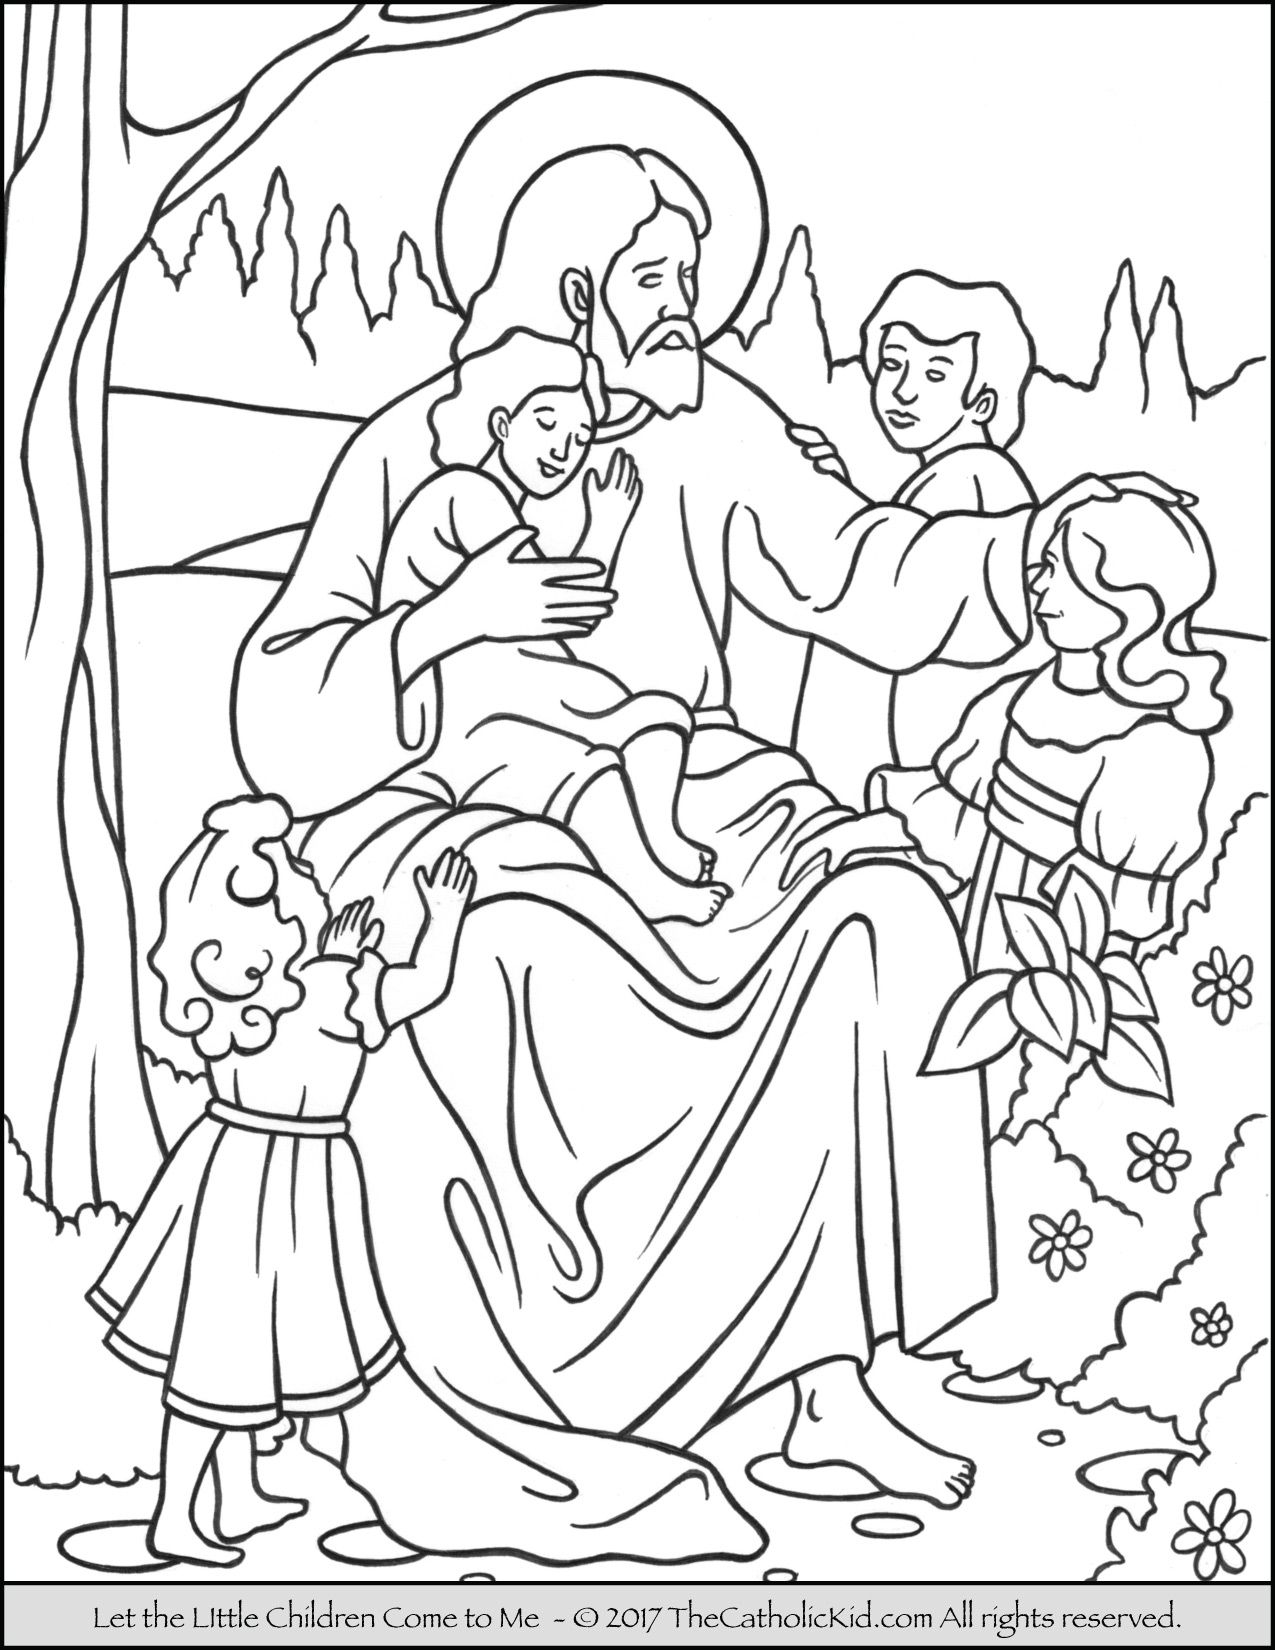 bible coloring pages for preschoolers must have free bible verse printable coloring sheets preschoolers coloring pages for bible